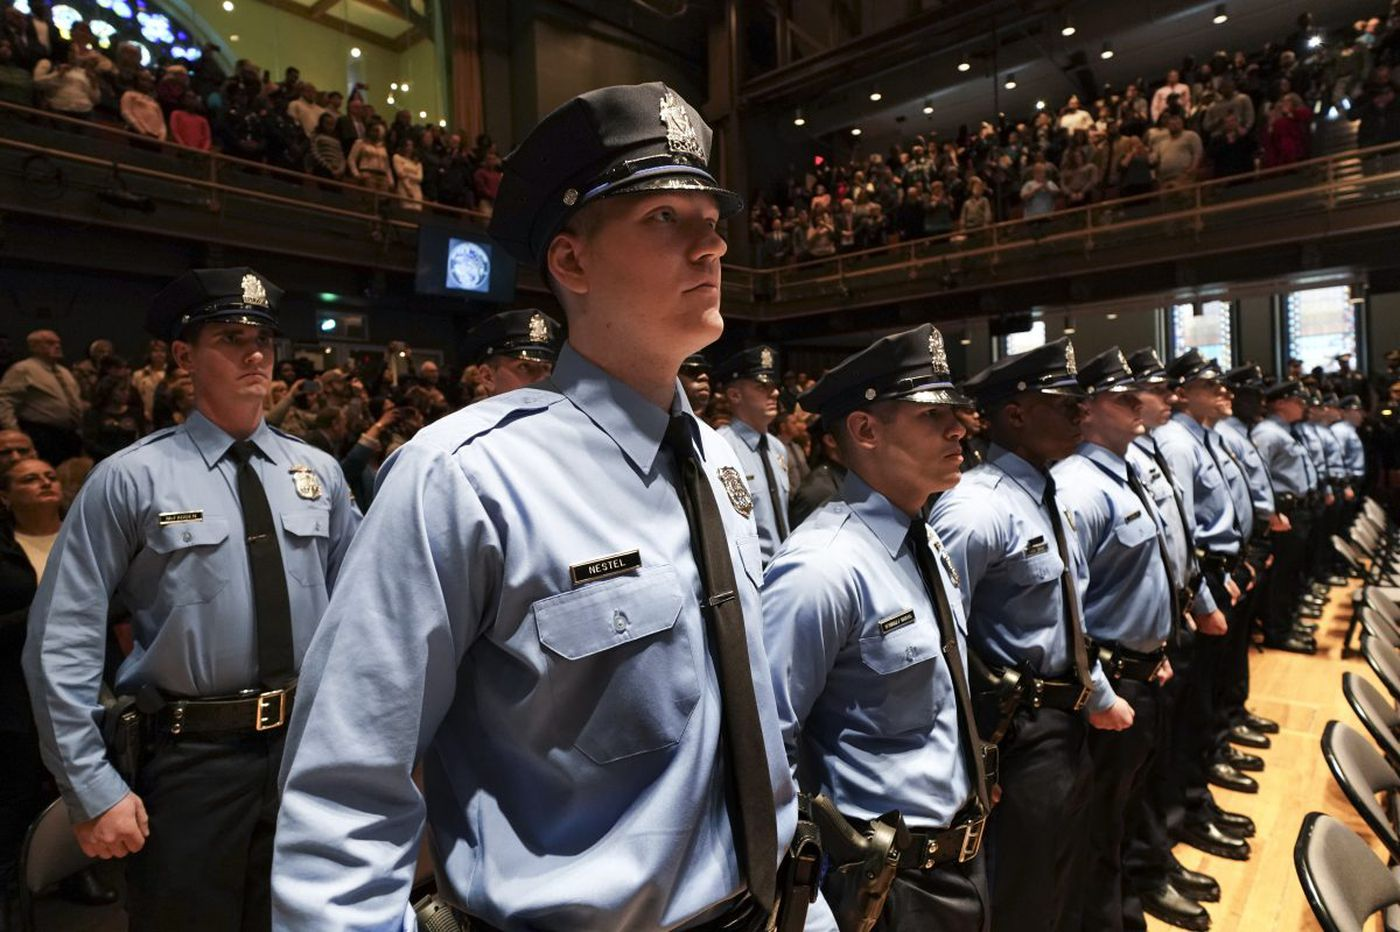 More kids want to grow up and be police officers | Dom Giordano